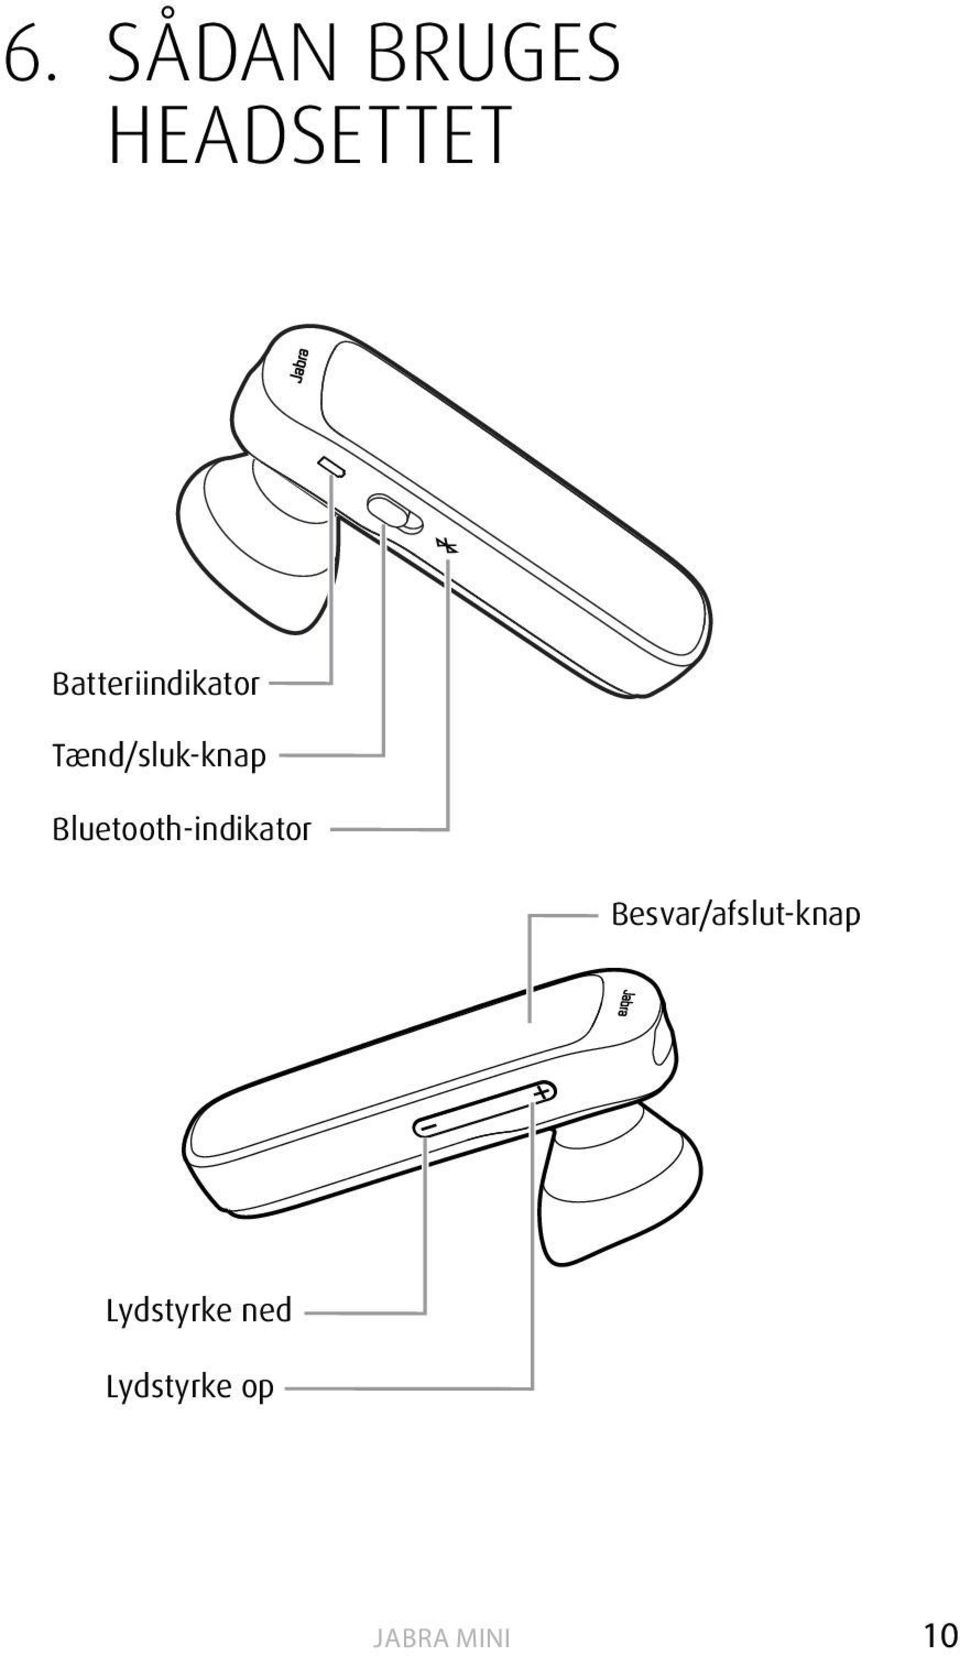 Bluetooth-indikator